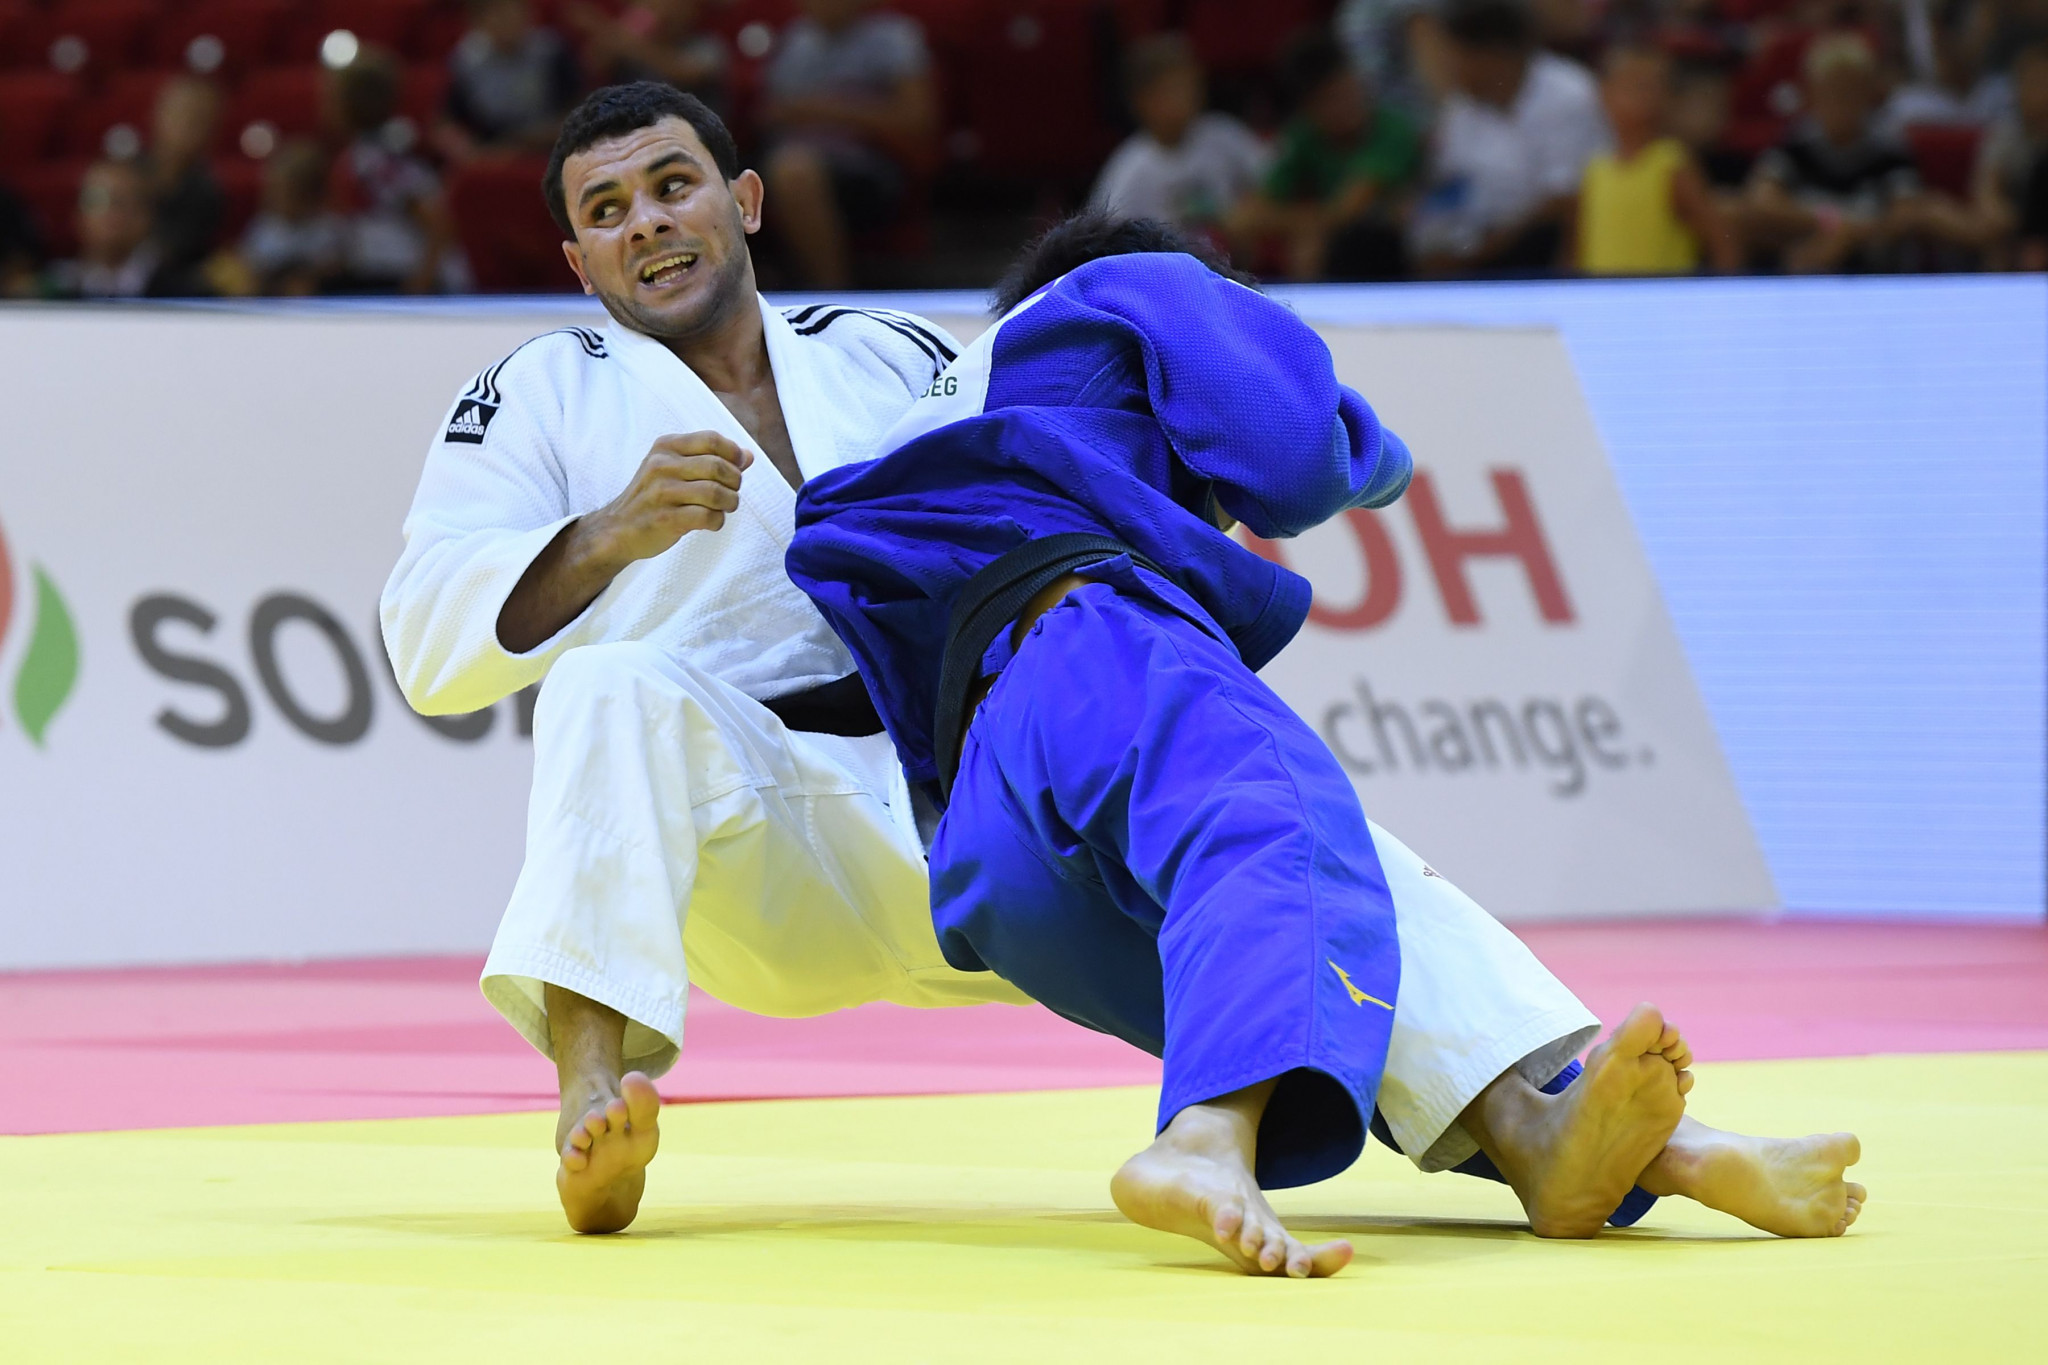 Egypt's Mohamed Abdelmawgoud came out on top in the men's under-66kg category ©Getty Images